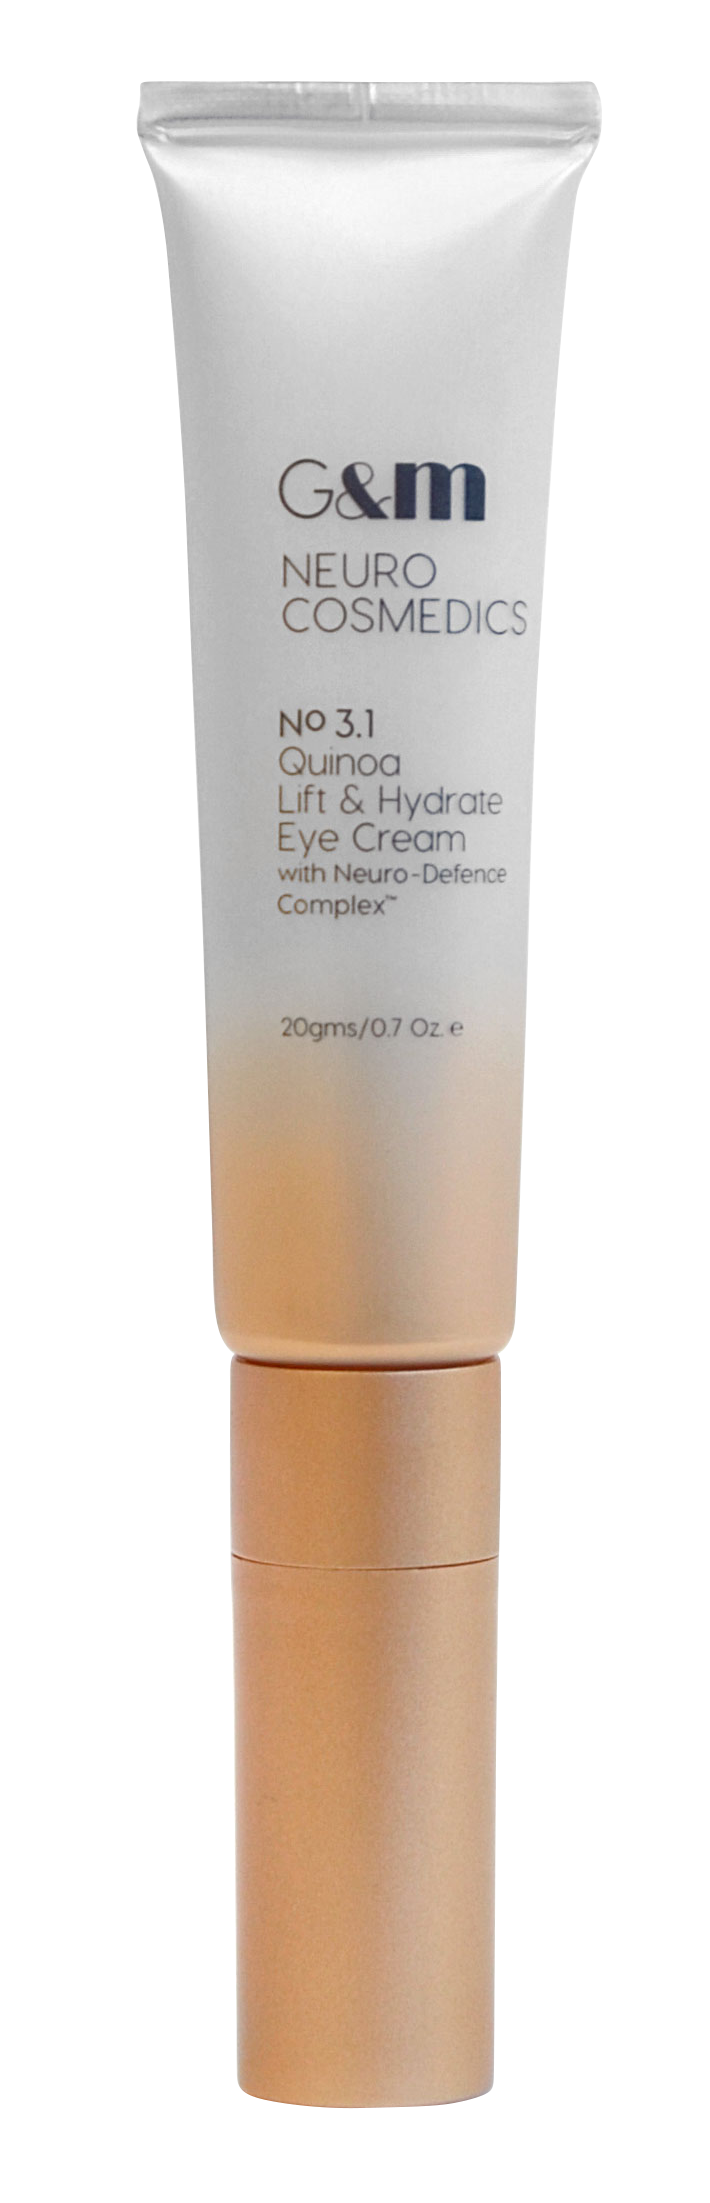 Quinoa Lift & Hydrate Eye Cream